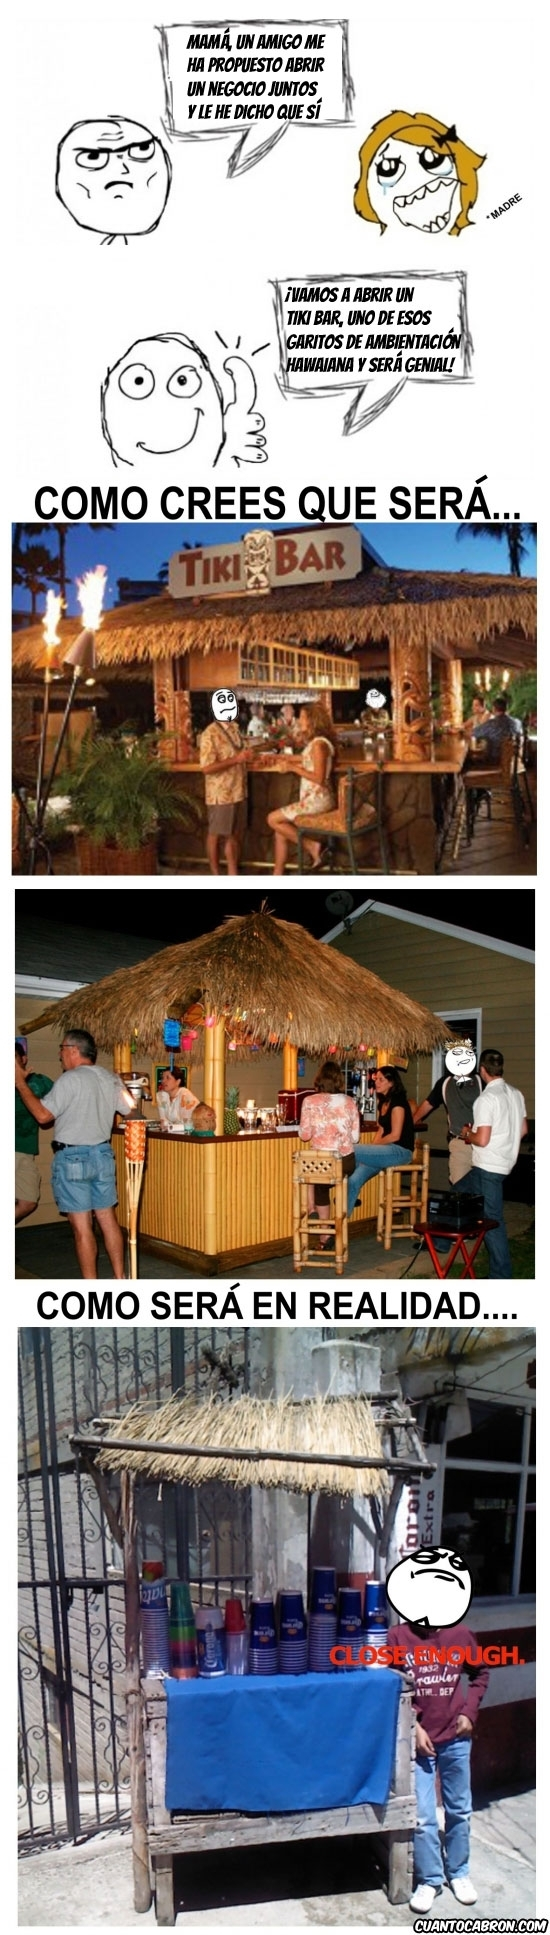 Fuck_yea - ¡Montemos un Tiki Bar!